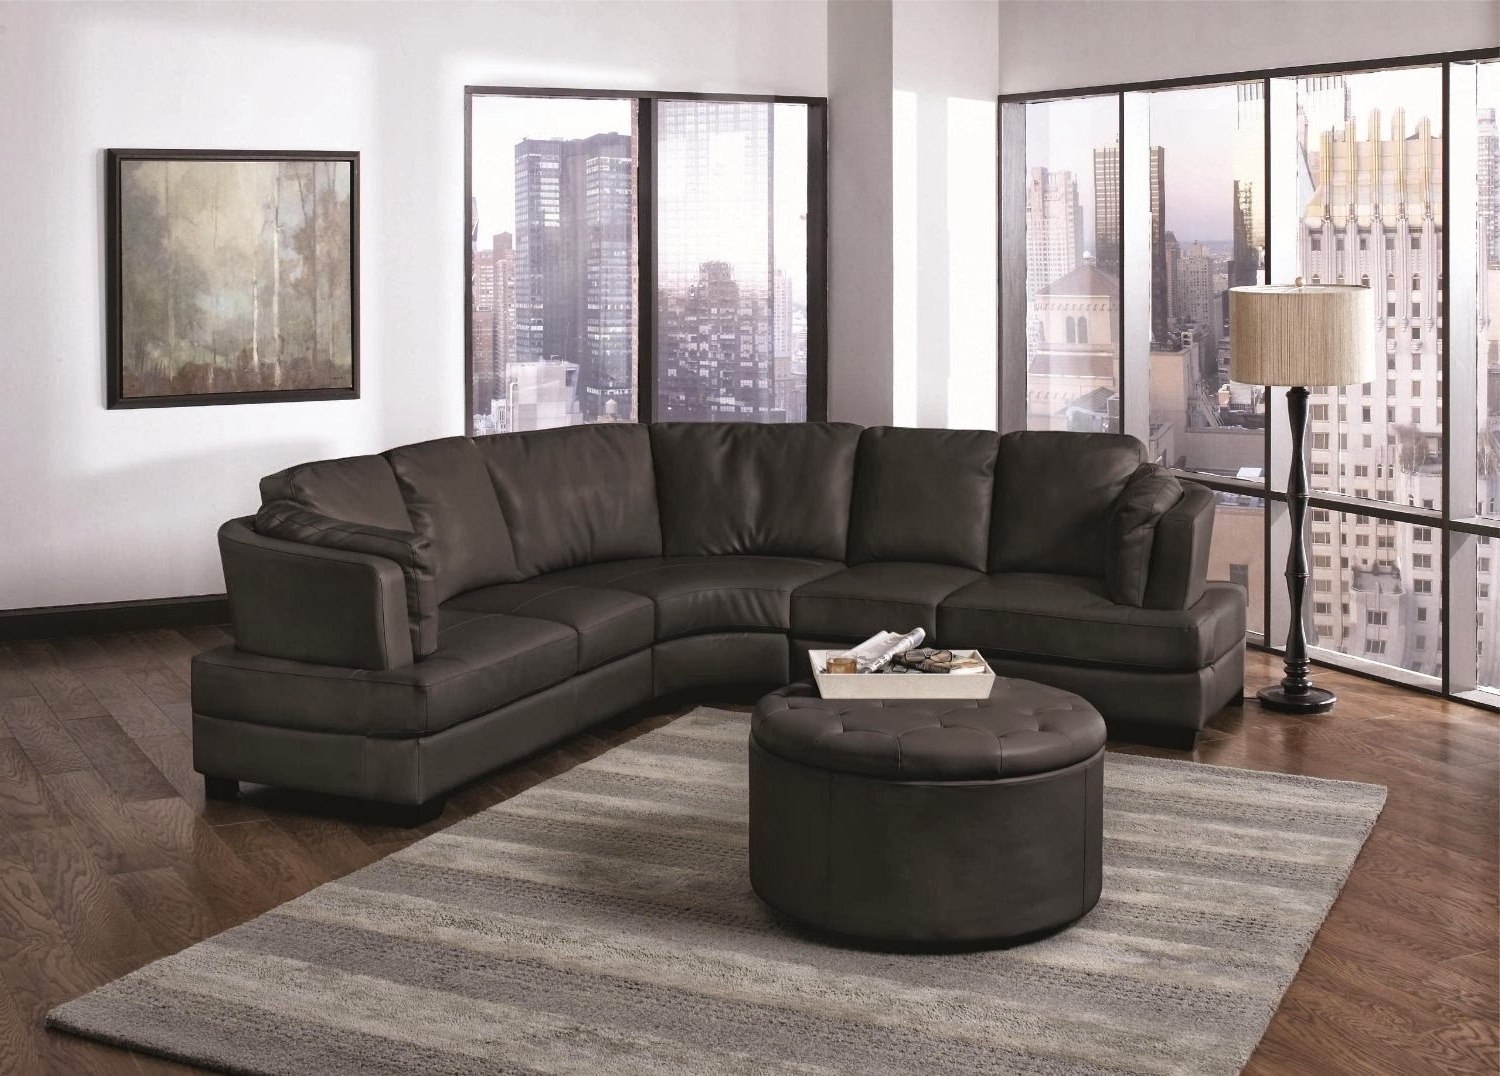 Ideas For Decorate With A Curved Sectional Sofa — Cabinets, Beds Regarding Popular Circular Sectional Sofas (View 12 of 20)